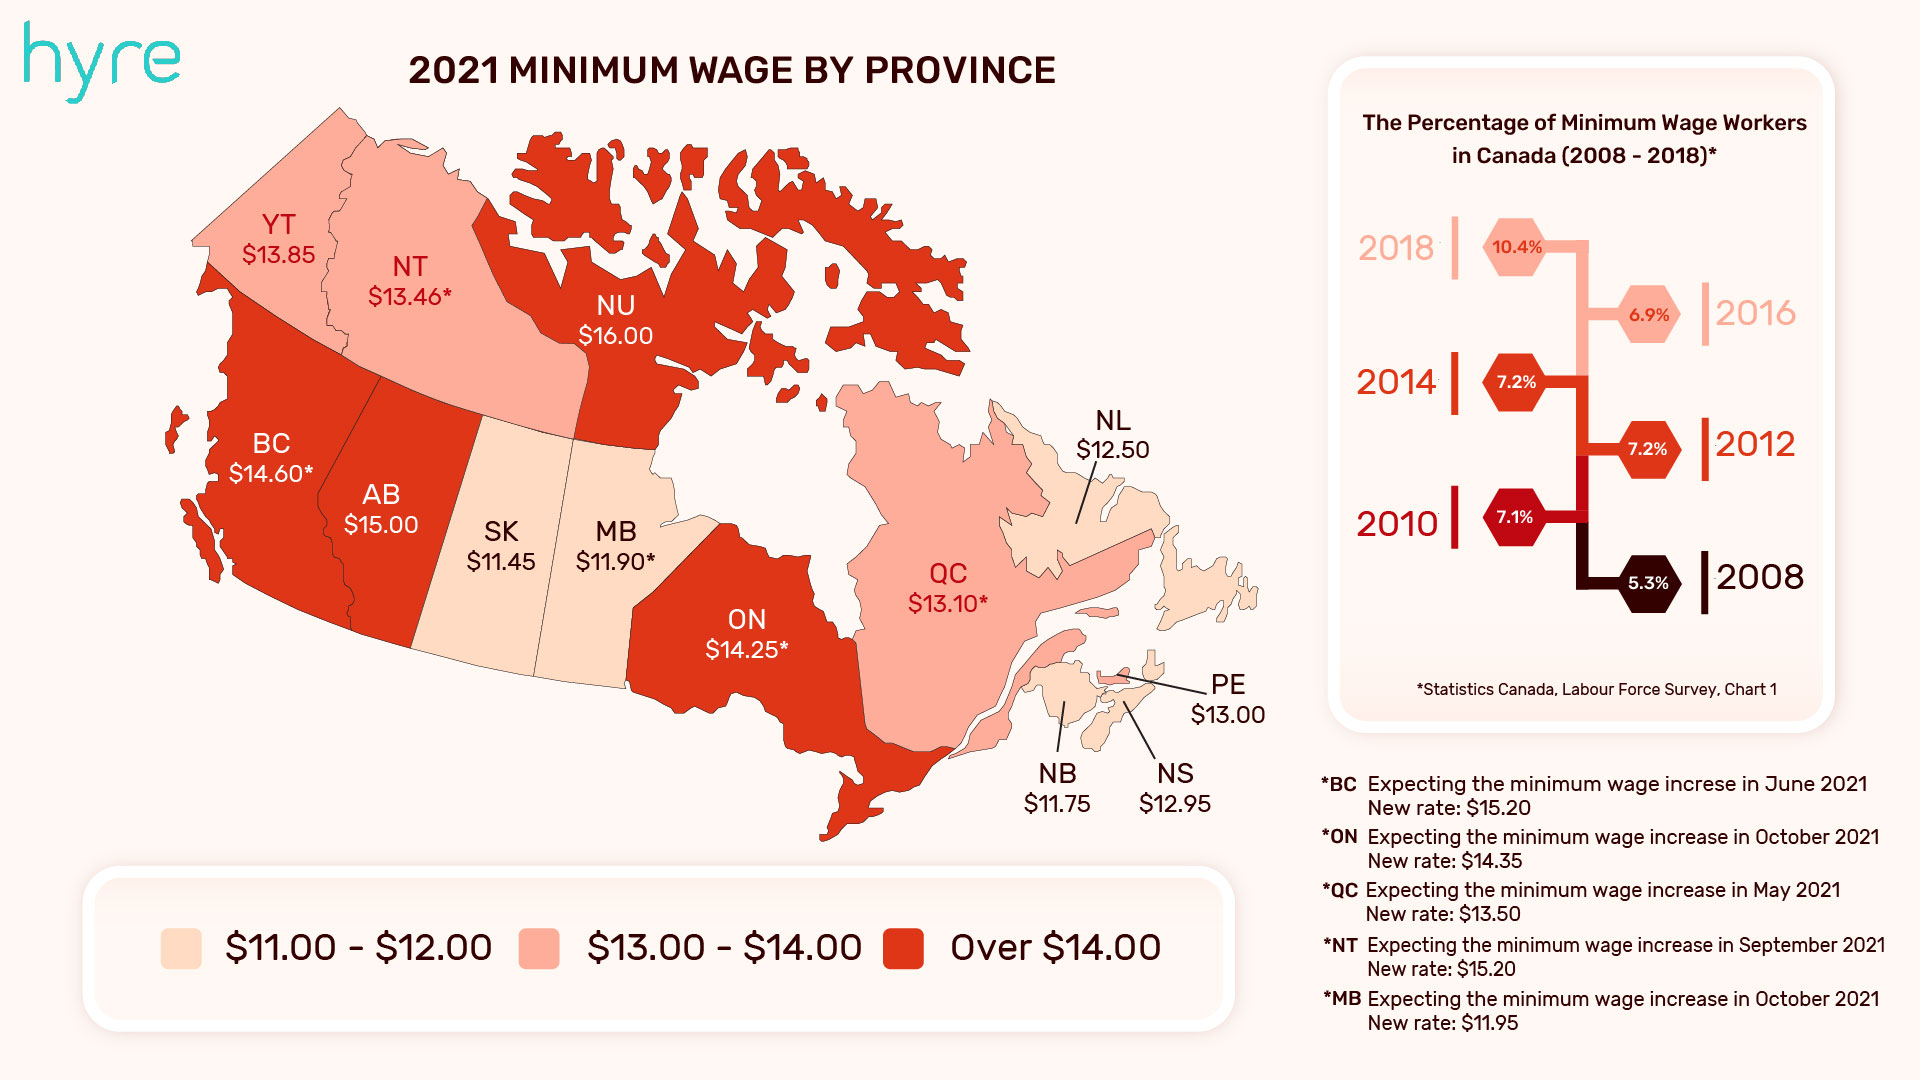 Minimum wage in Canada by province map